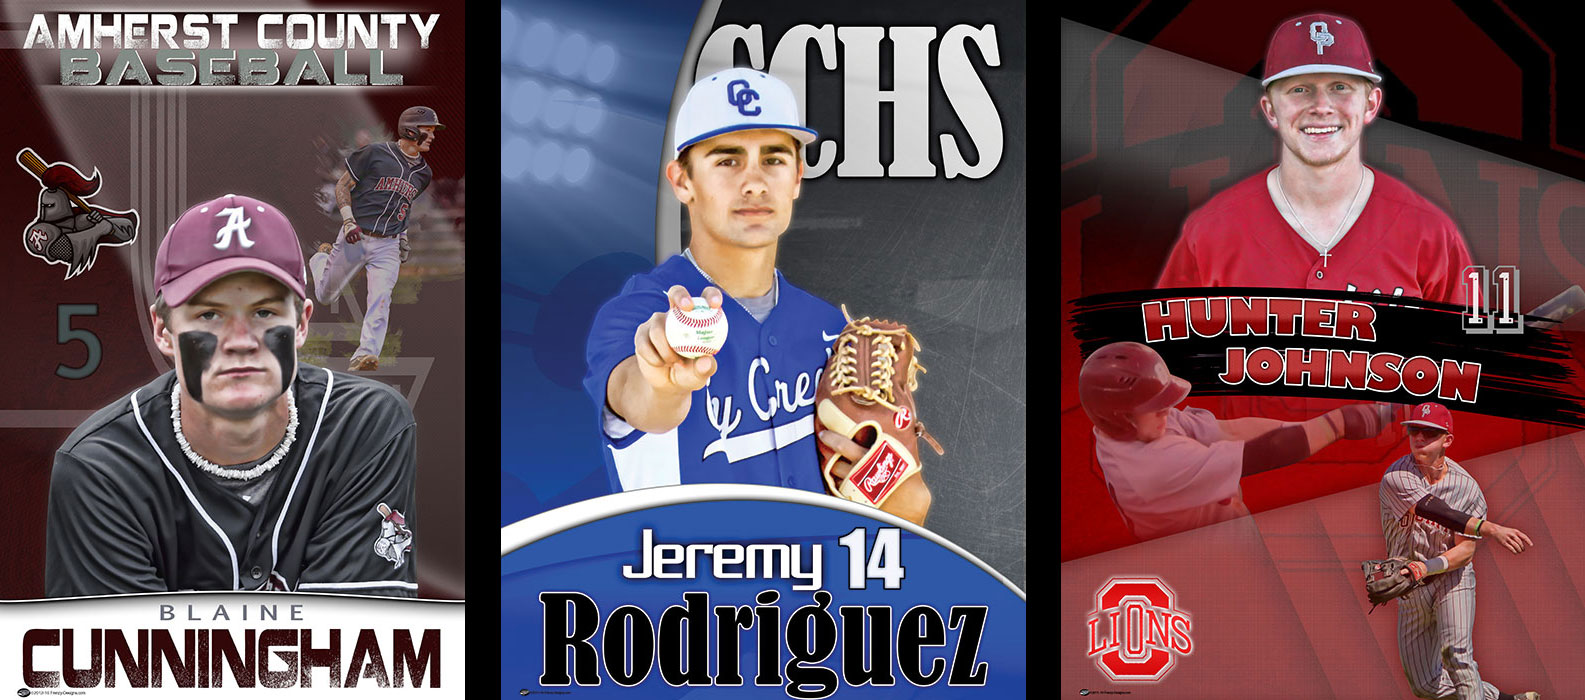 Custom Senior Baseball Banners